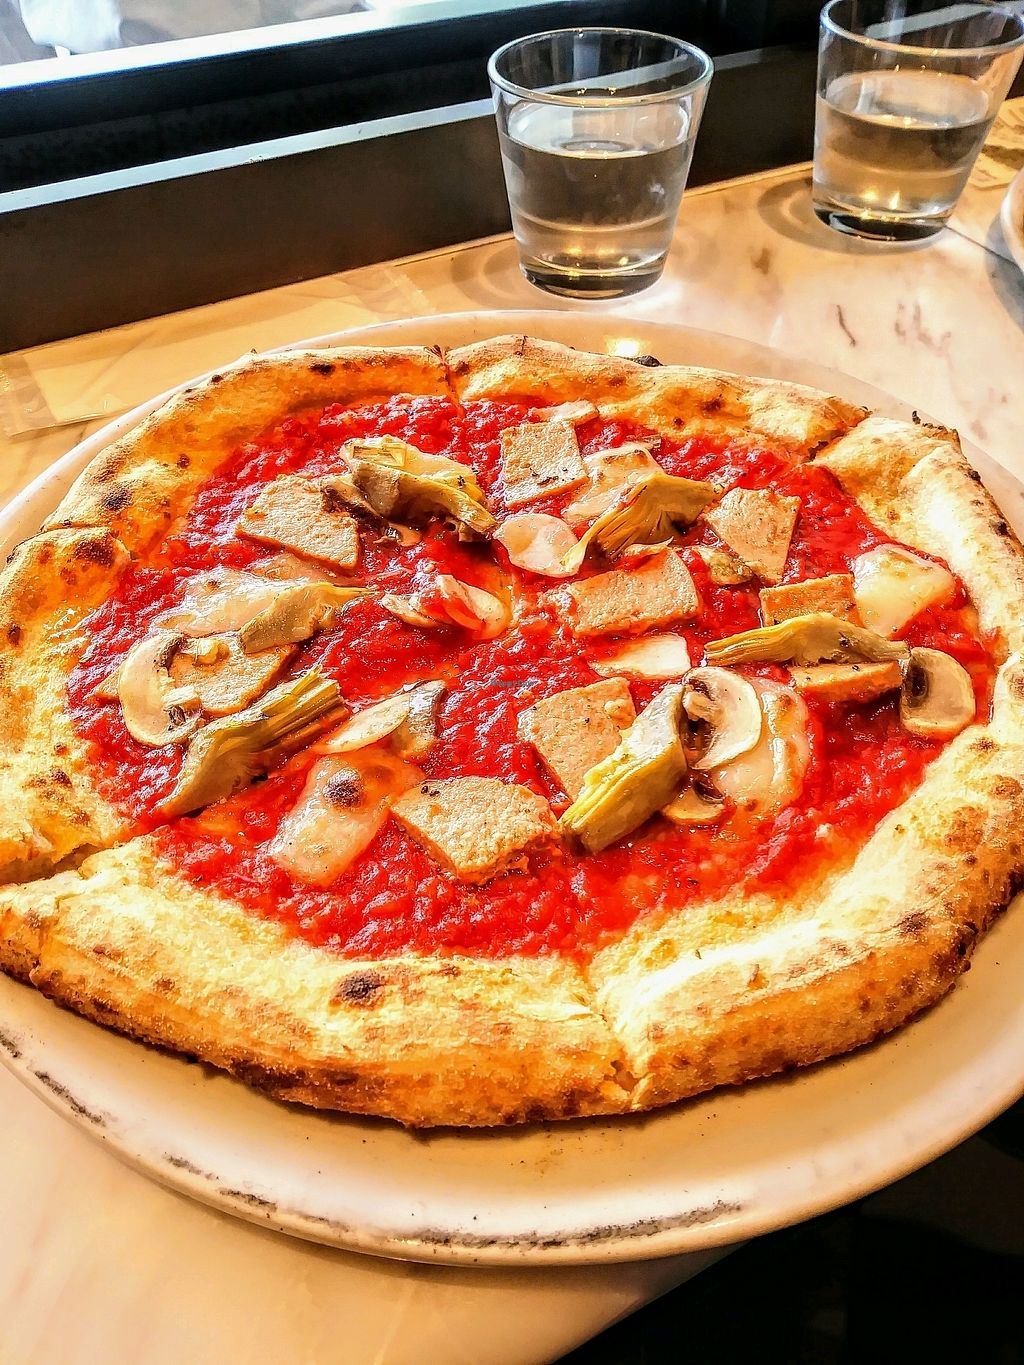 """Photo of 800 Degrees - Shibuyaku  by <a href=""""/members/profile/AaronMG"""">AaronMG</a> <br/>Pizza with mushrooms, artichokes, and vegan cheese/ham <br/> April 3, 2018  - <a href='/contact/abuse/image/104410/380148'>Report</a>"""